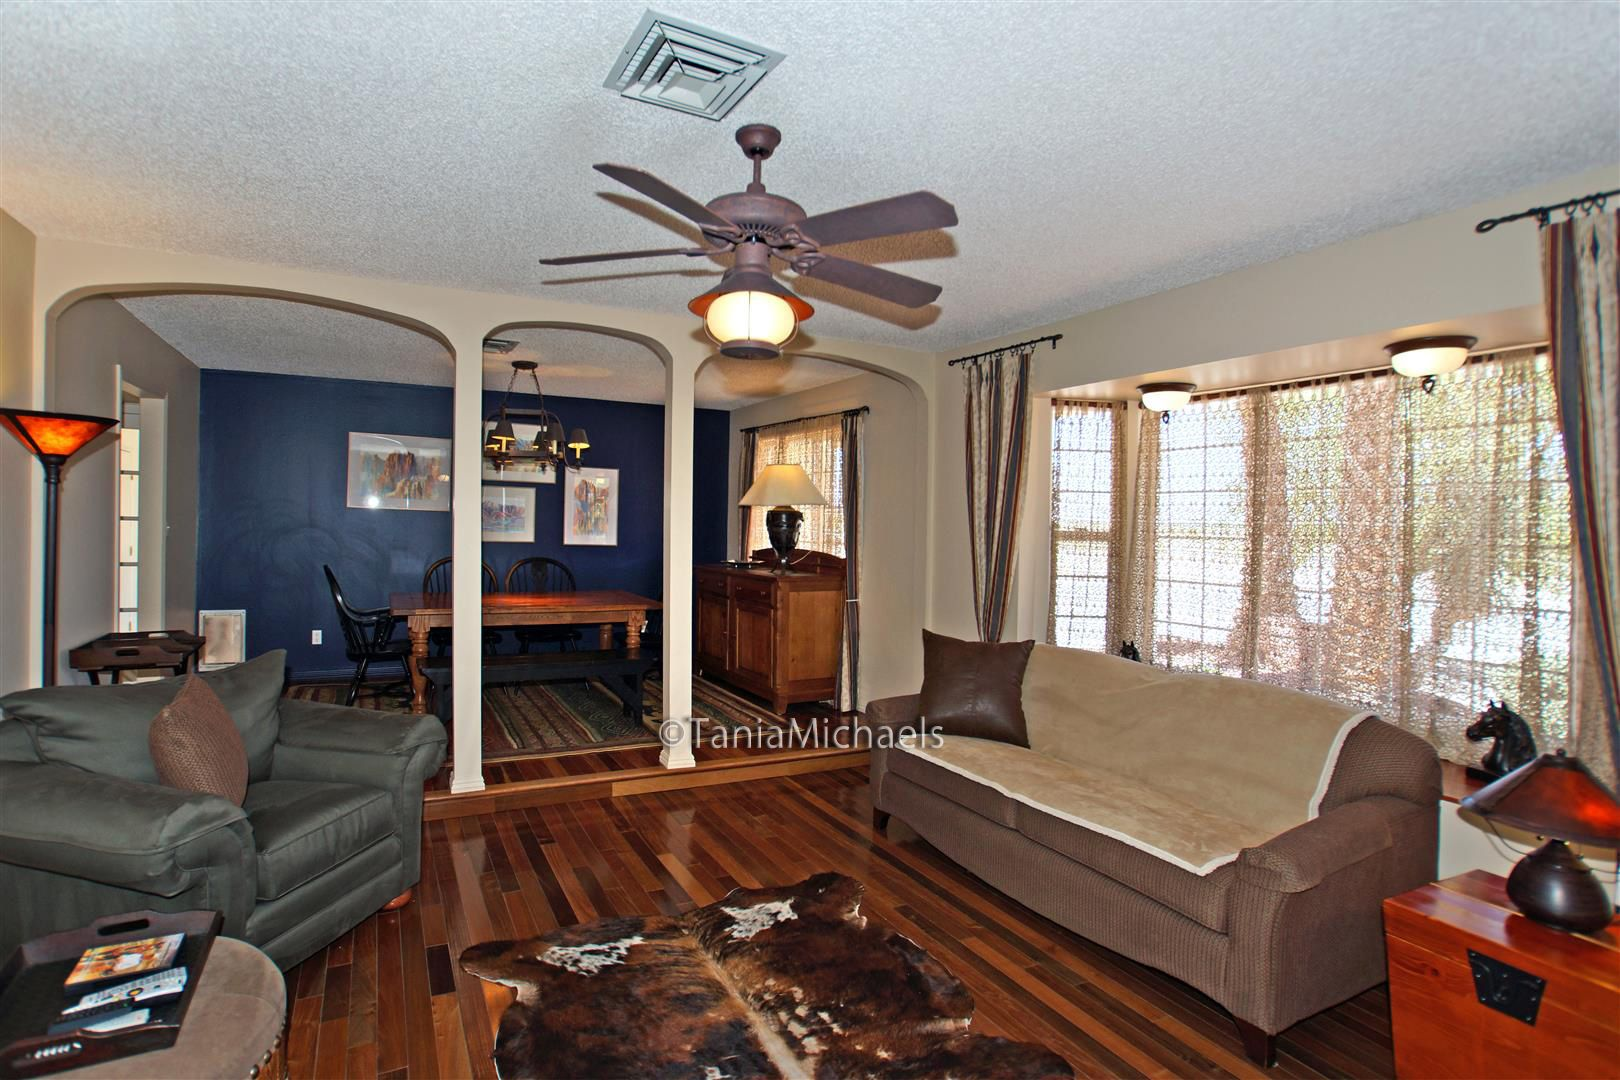 Midnight blue and Bellawood hardwood floors, just what you'd expect in a horse property home. | Las Vegas Real Estate http://michaelsrealestate.com/5375wshelbourne